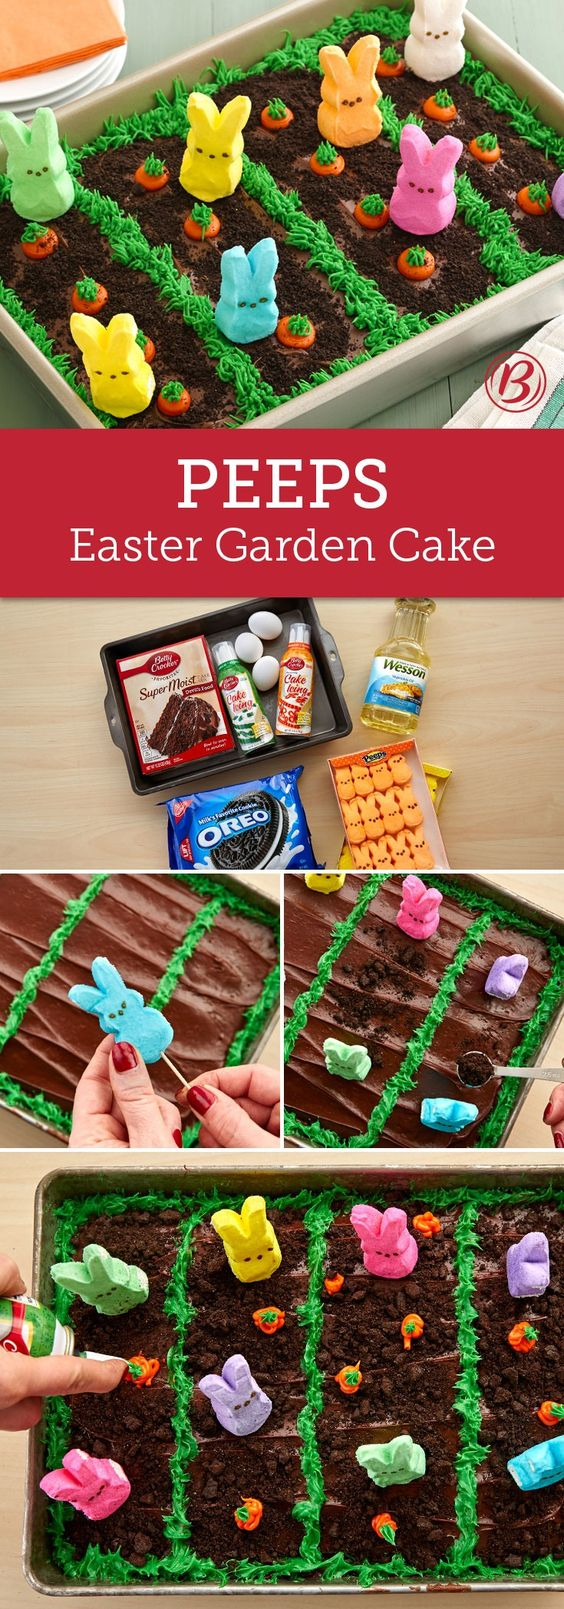 "An ordinary chocolate sheet cake gets transformed into an Easter garden scene with this creative recipe that is brought to life with Peeps! Bright orange and green frosting makes the carrots pop in their chocolaty ""dirt"" rows, while crumbled Oreos give the garden a perfect dusting. A too-cute treat the kids will love to see at the Easter dessert spread!:"